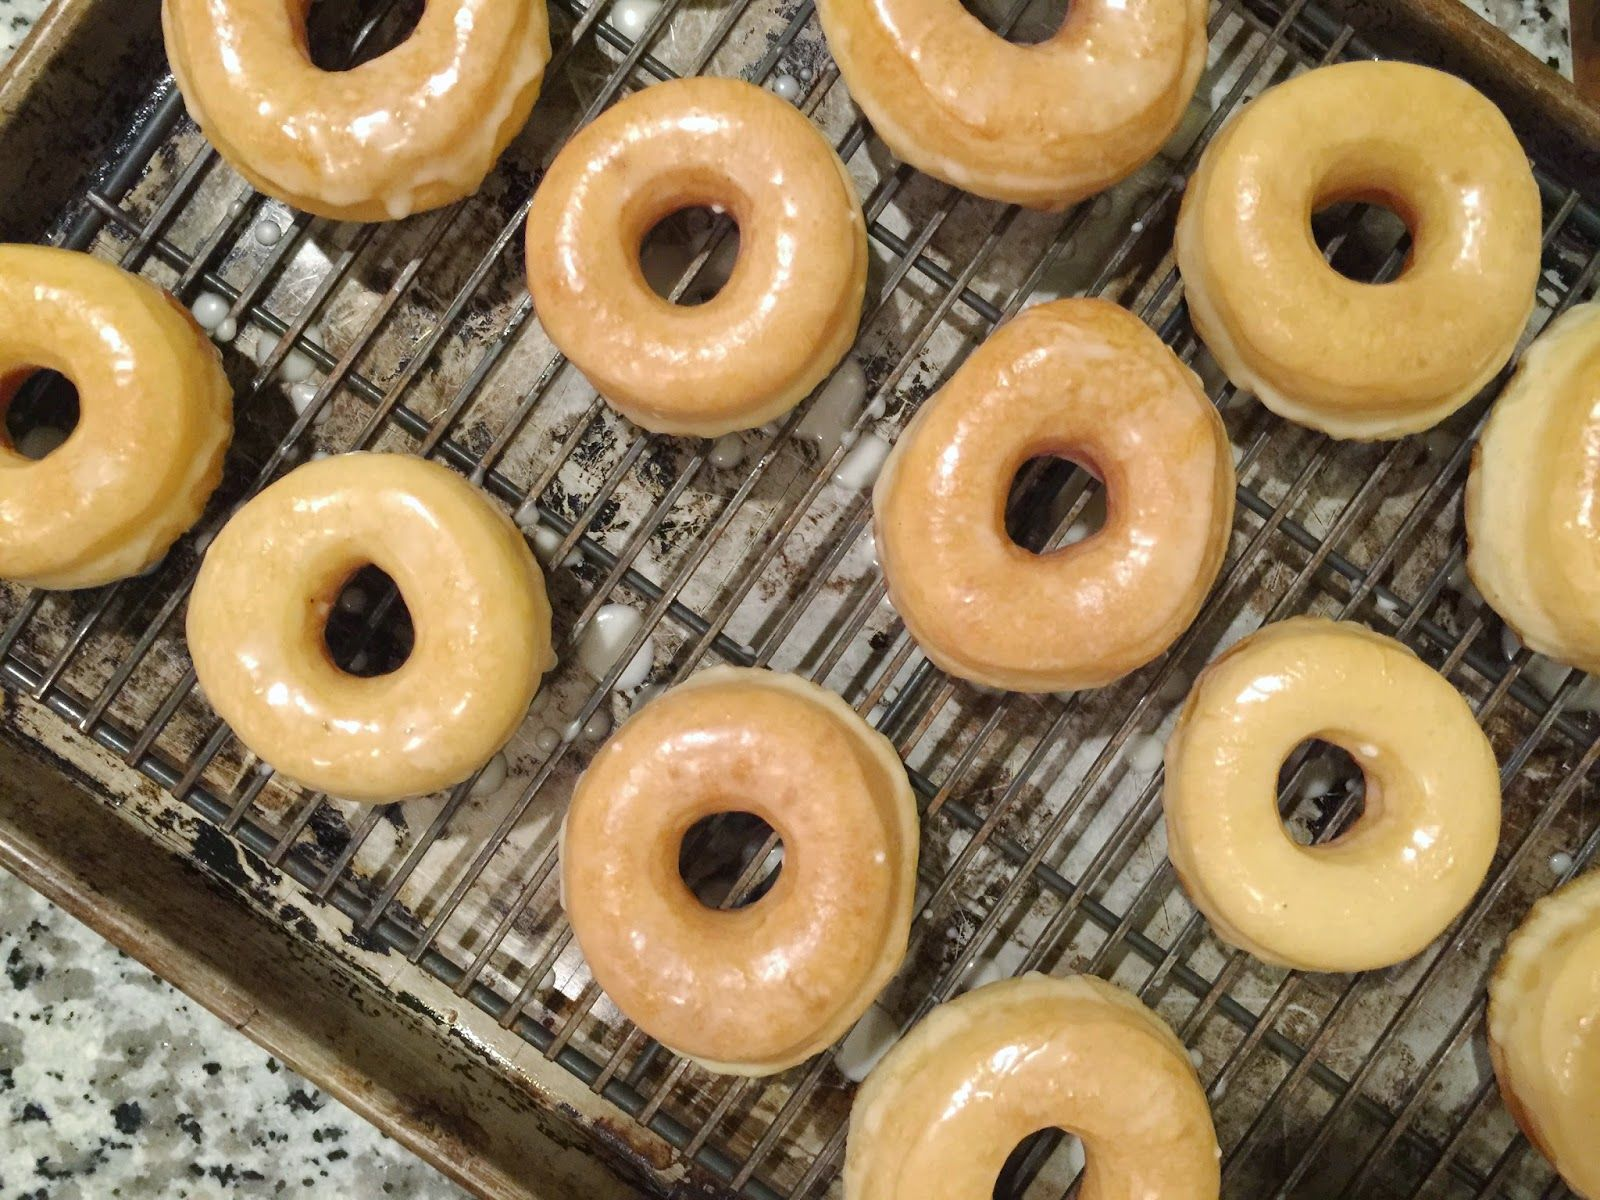 Thyme In Our Kitchen: Glazed Yeast Doughnuts